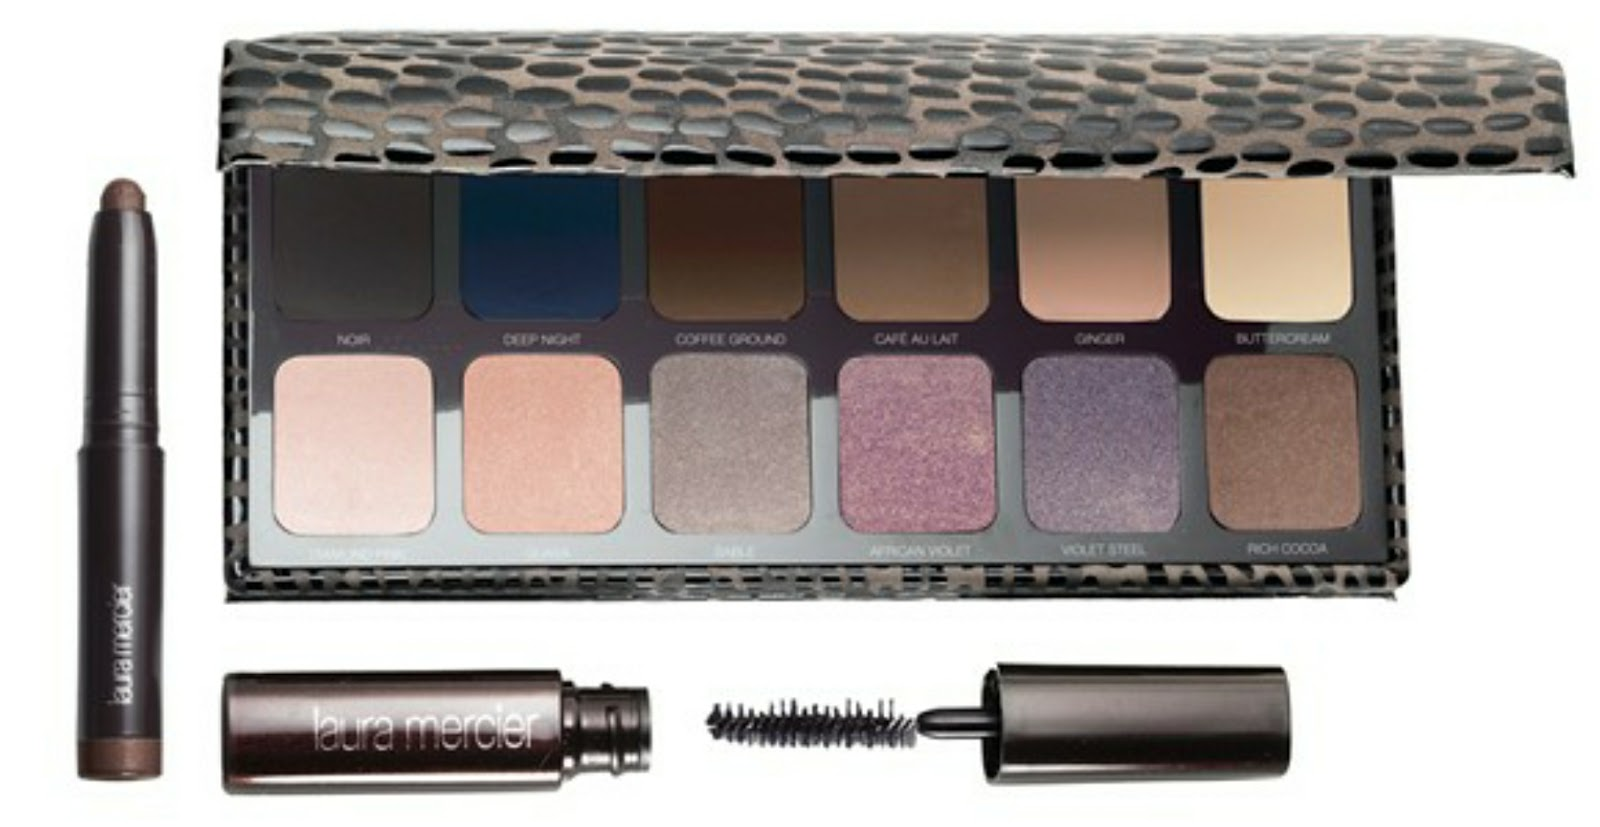 Laura Mercier Artist Palette for Eyes